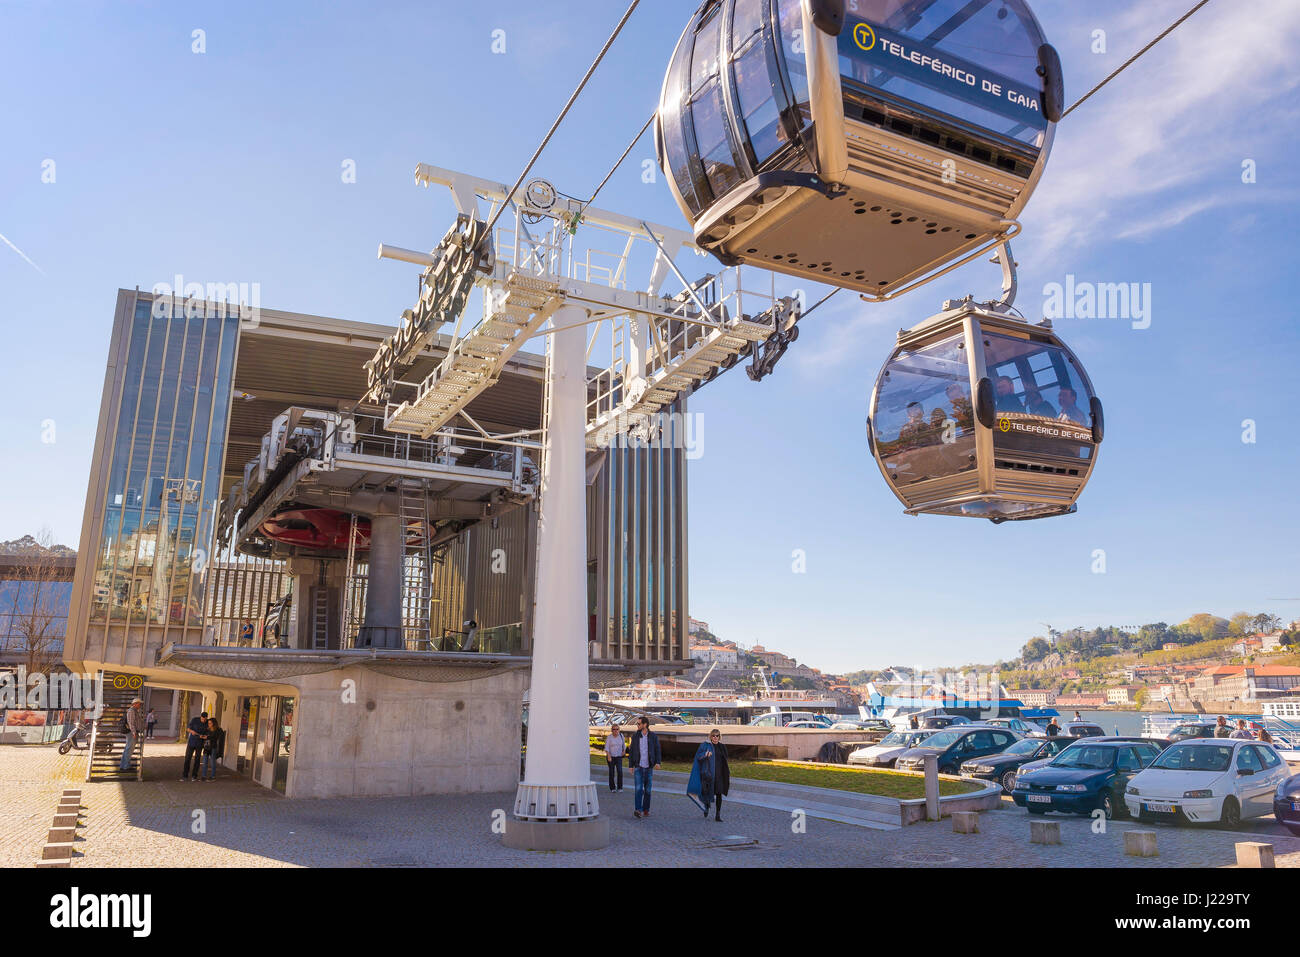 Cable Automotive Oklahoma City : Cable car porto portugal cars enter and exit a